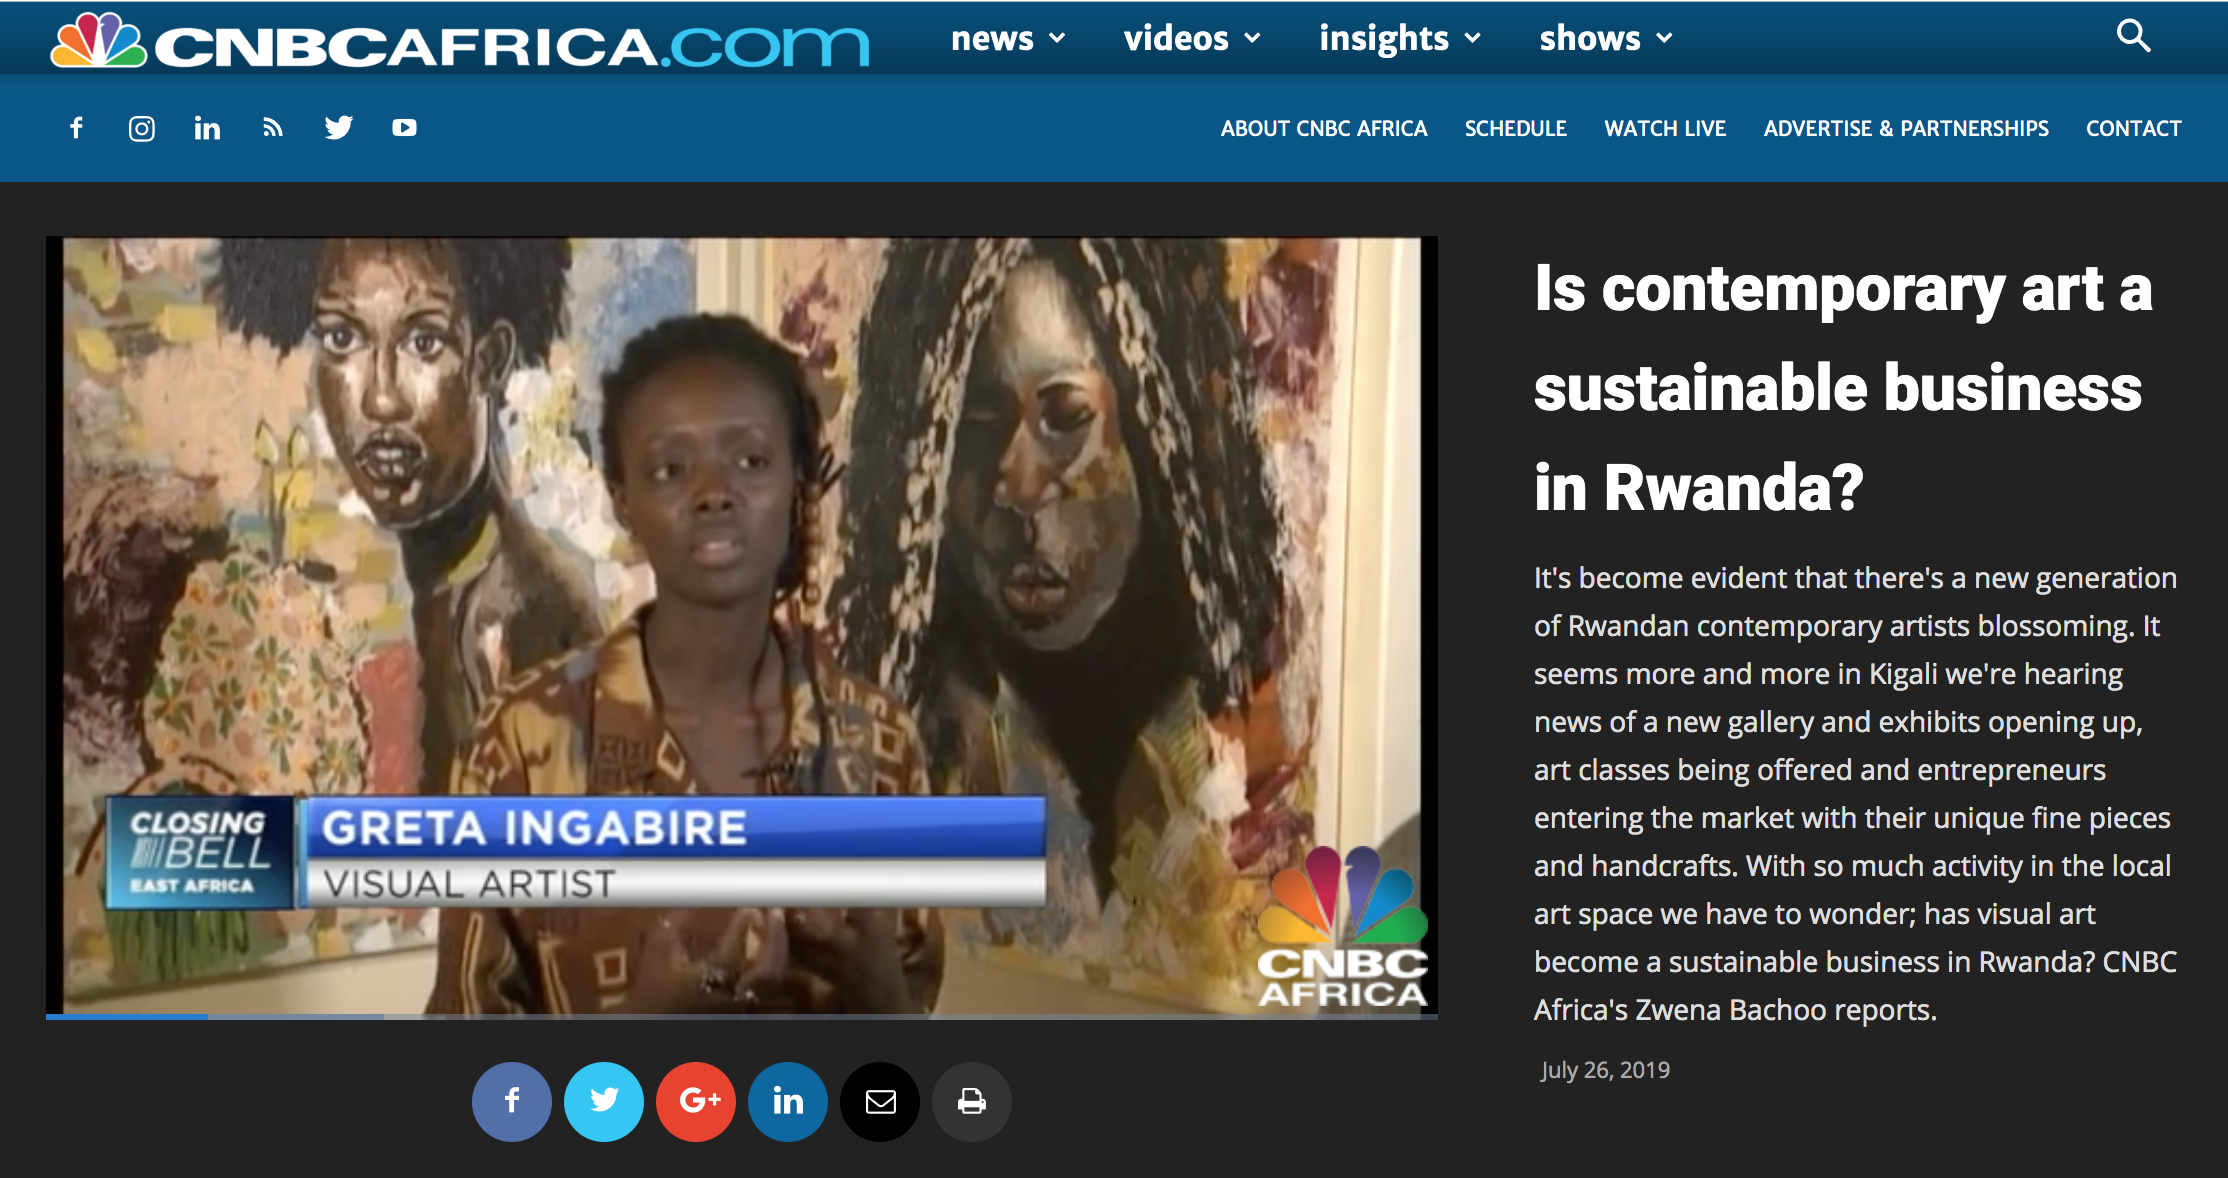 Envision and artists featured in CNBC AFRICA news story